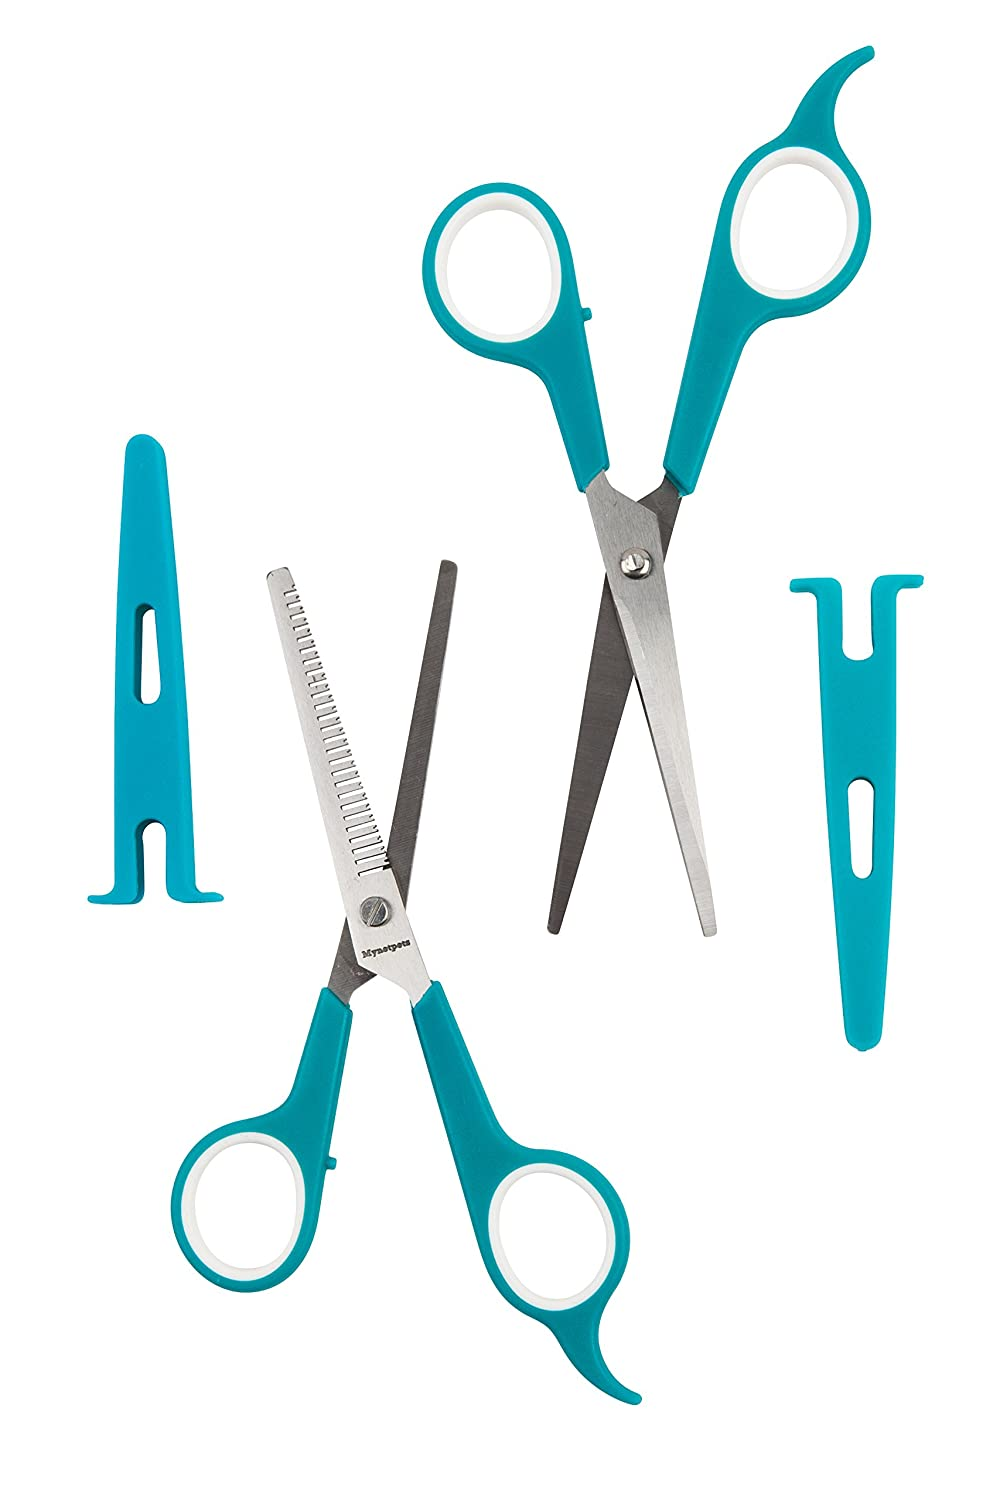 Dog and Pet Grooming Scissors. 2 pair - Thinning Shears and Straight Edge Shears Perfect for Dogs, Cats, Puppies, Kittens and Other Pets. Stainless Steel Engineered Blades with Protective Caps Fortune Metal Manufacturer